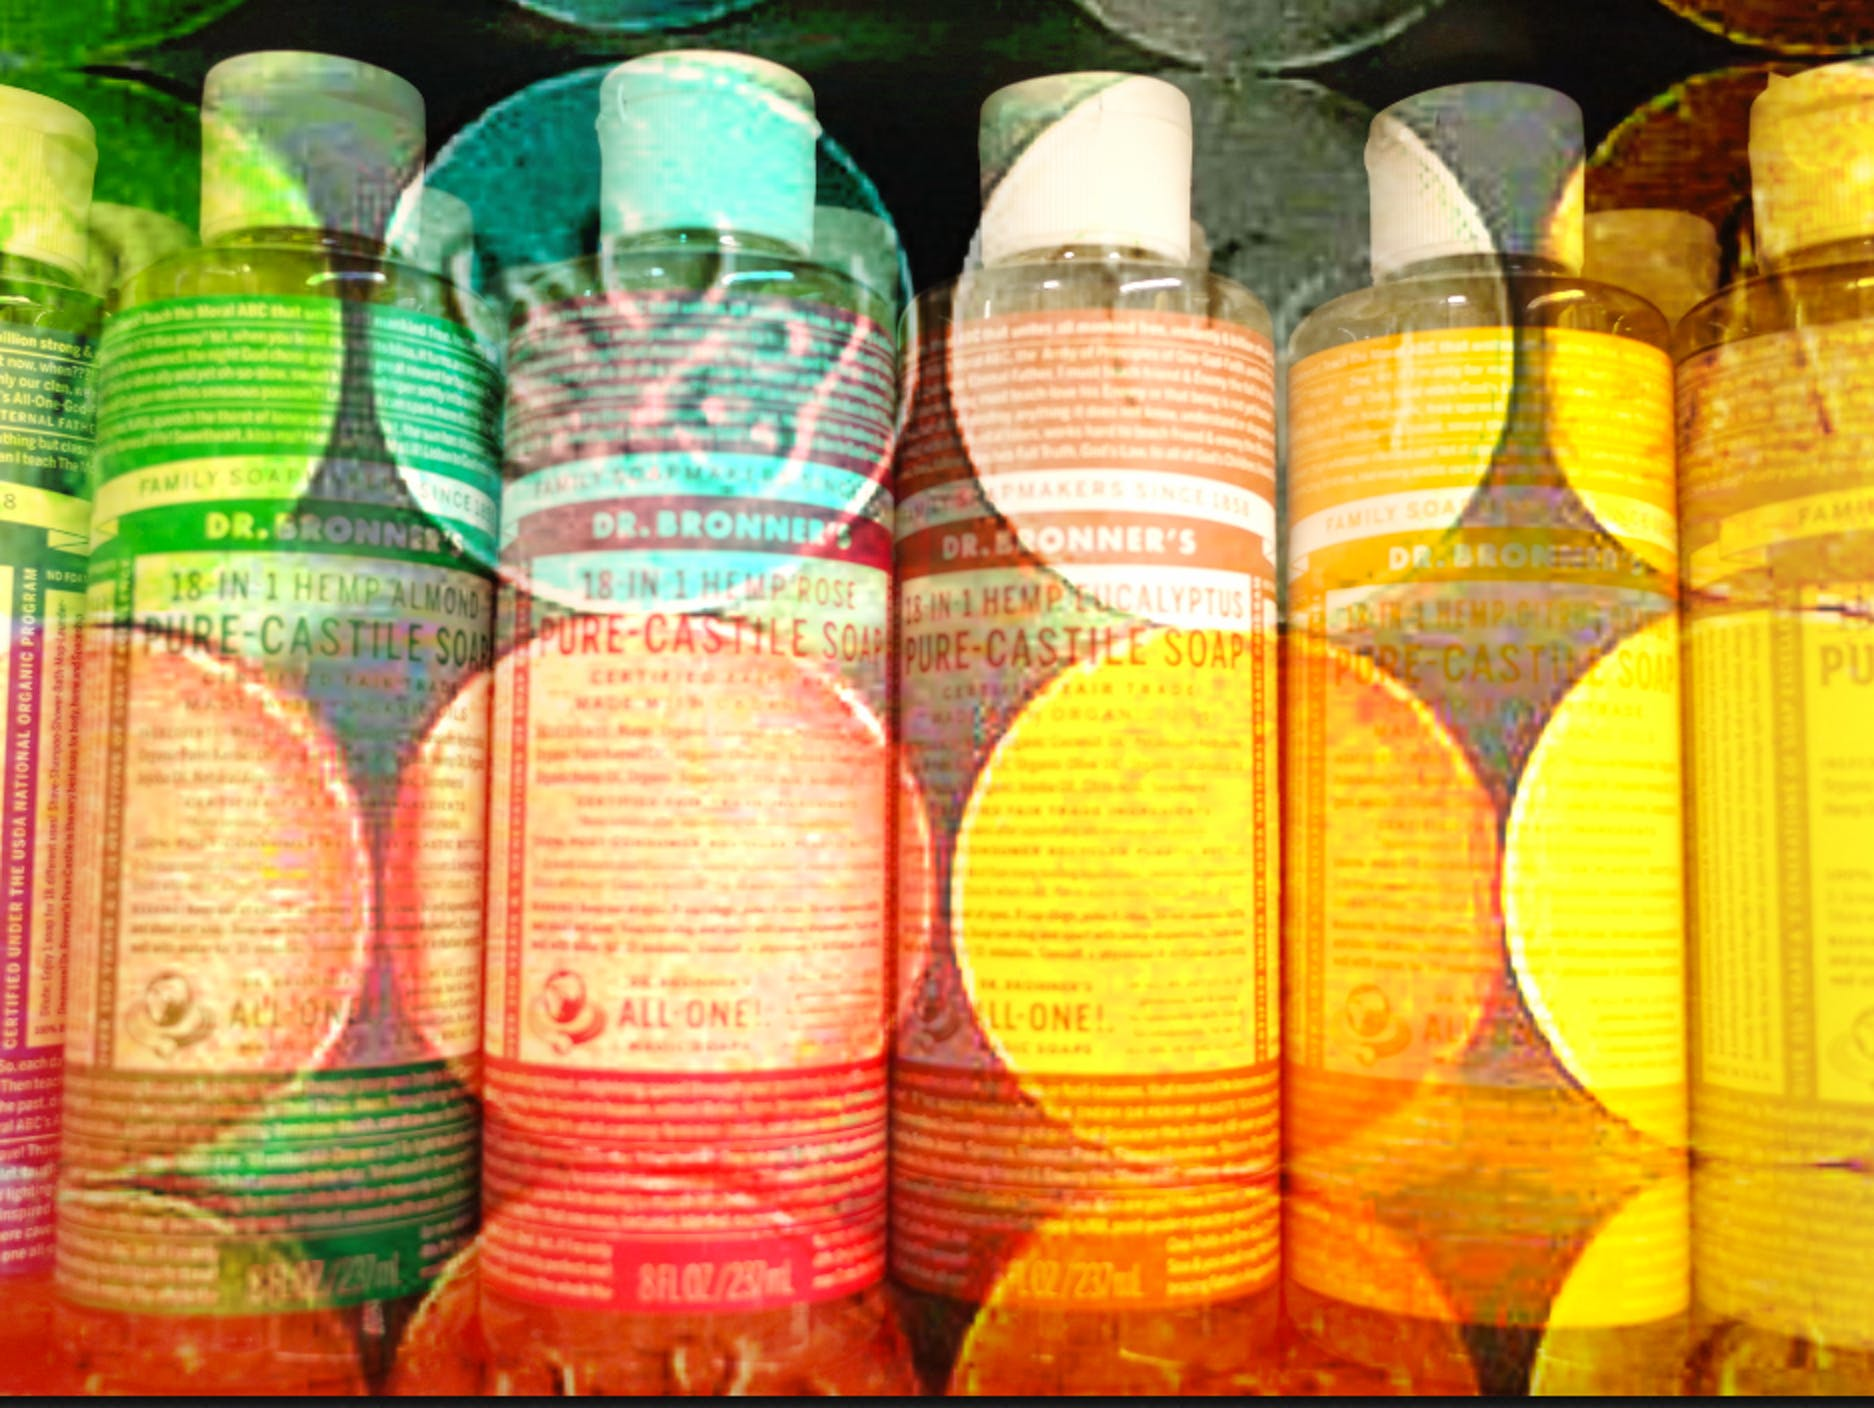 The soap company Dr. Bronners wants to fund a MDMA revolution.